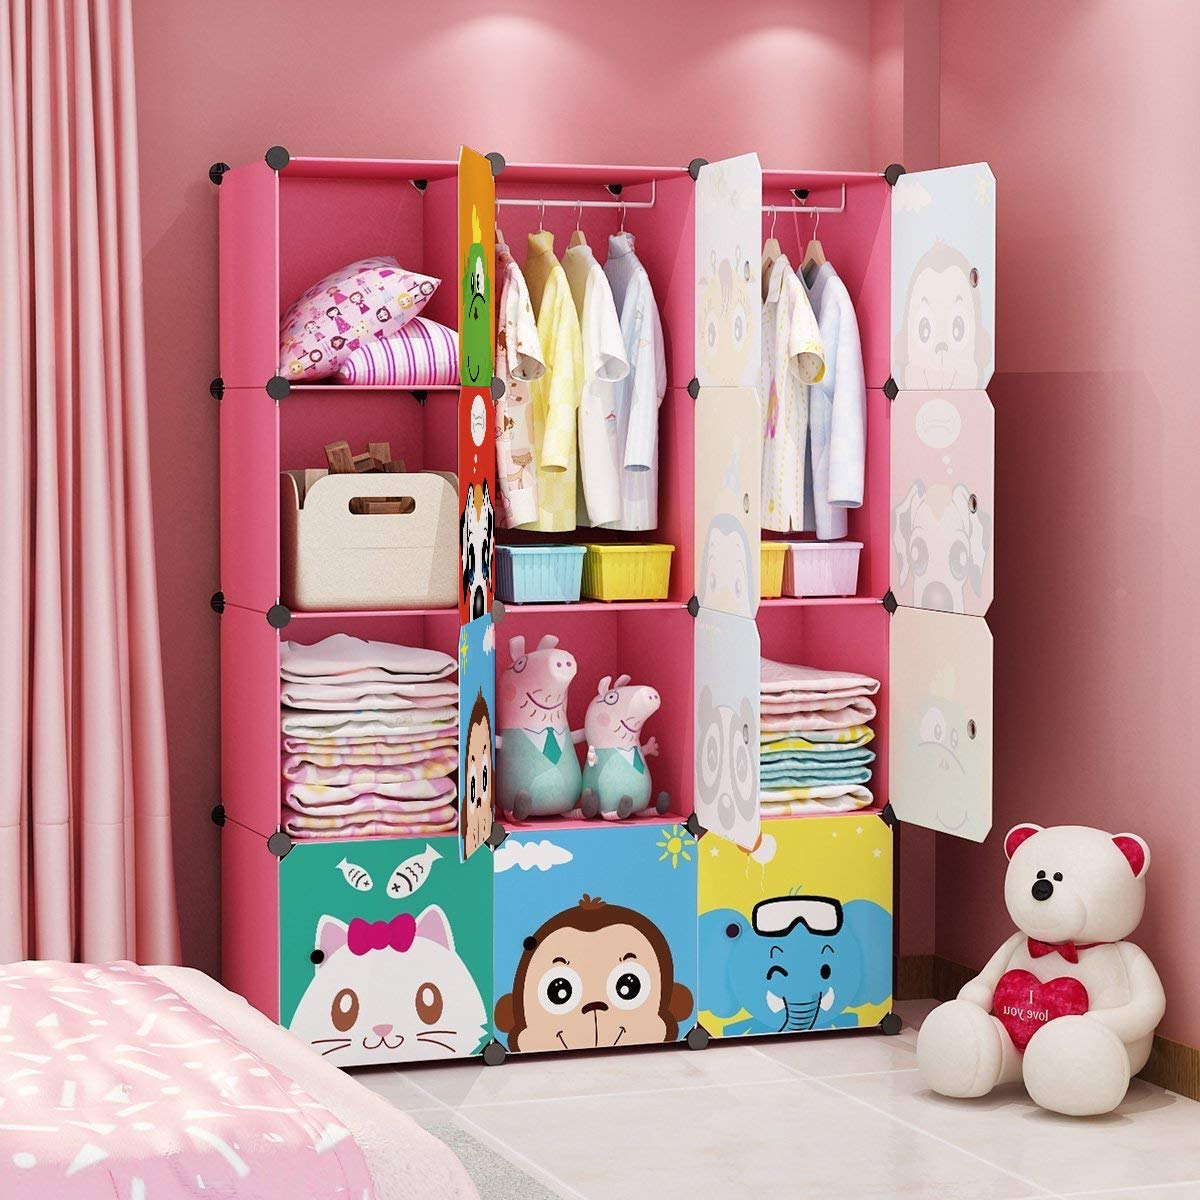 MAGINELS Children Wardrobe Kid Dresser Cute Baby Portable Closet Bedroom Armoire Clothes Hanging Storage Rack Cube Organizer Large Pink 8 Cube & 2 Hanging Section by MAGINELS